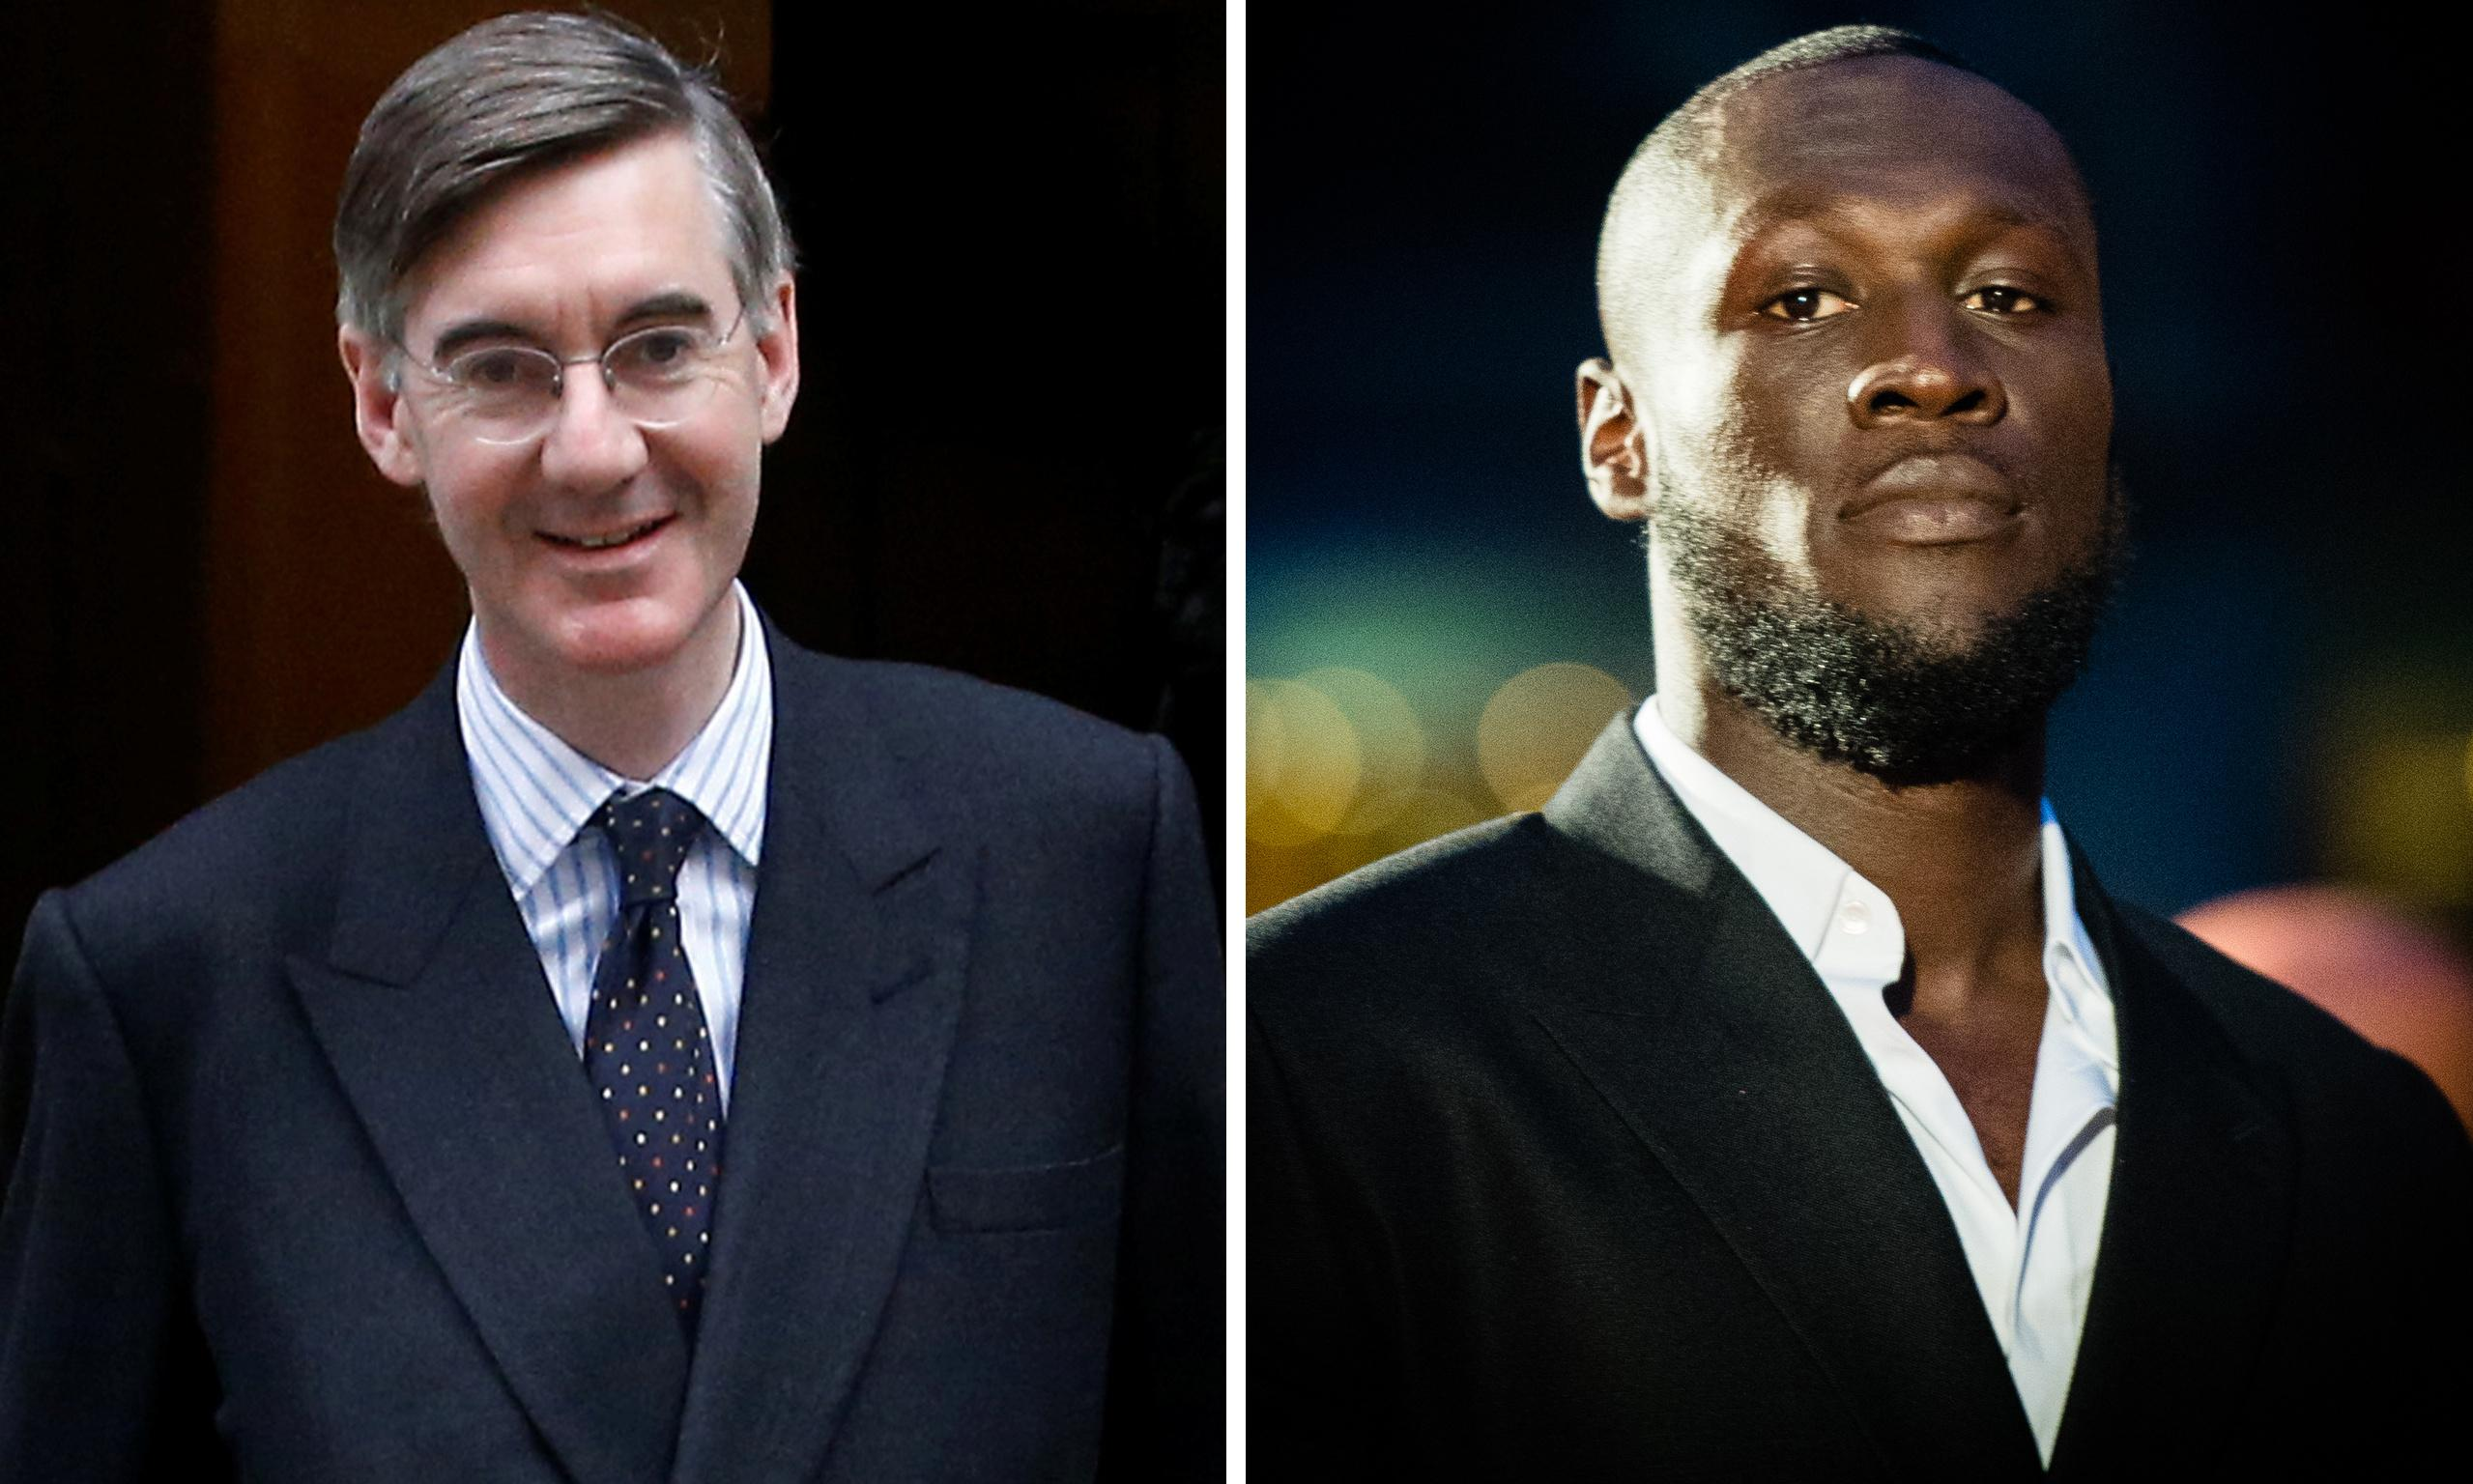 Stormzy joins backlash against Rees-Mogg over Grenfell apology